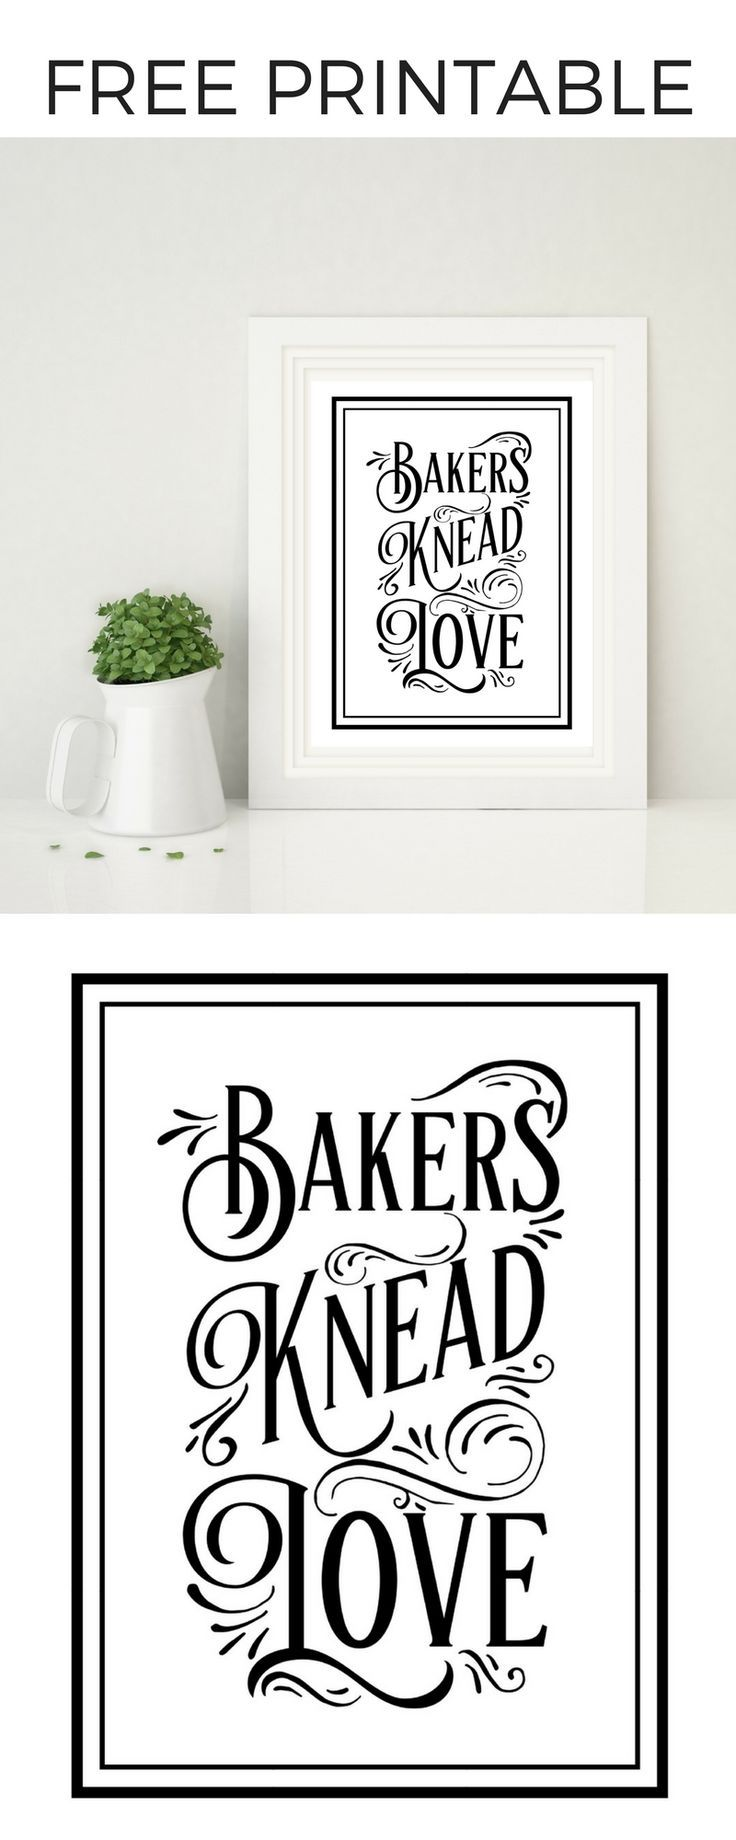 Free Printable - Bakers Knead Love | Free printable, Free and Free ...